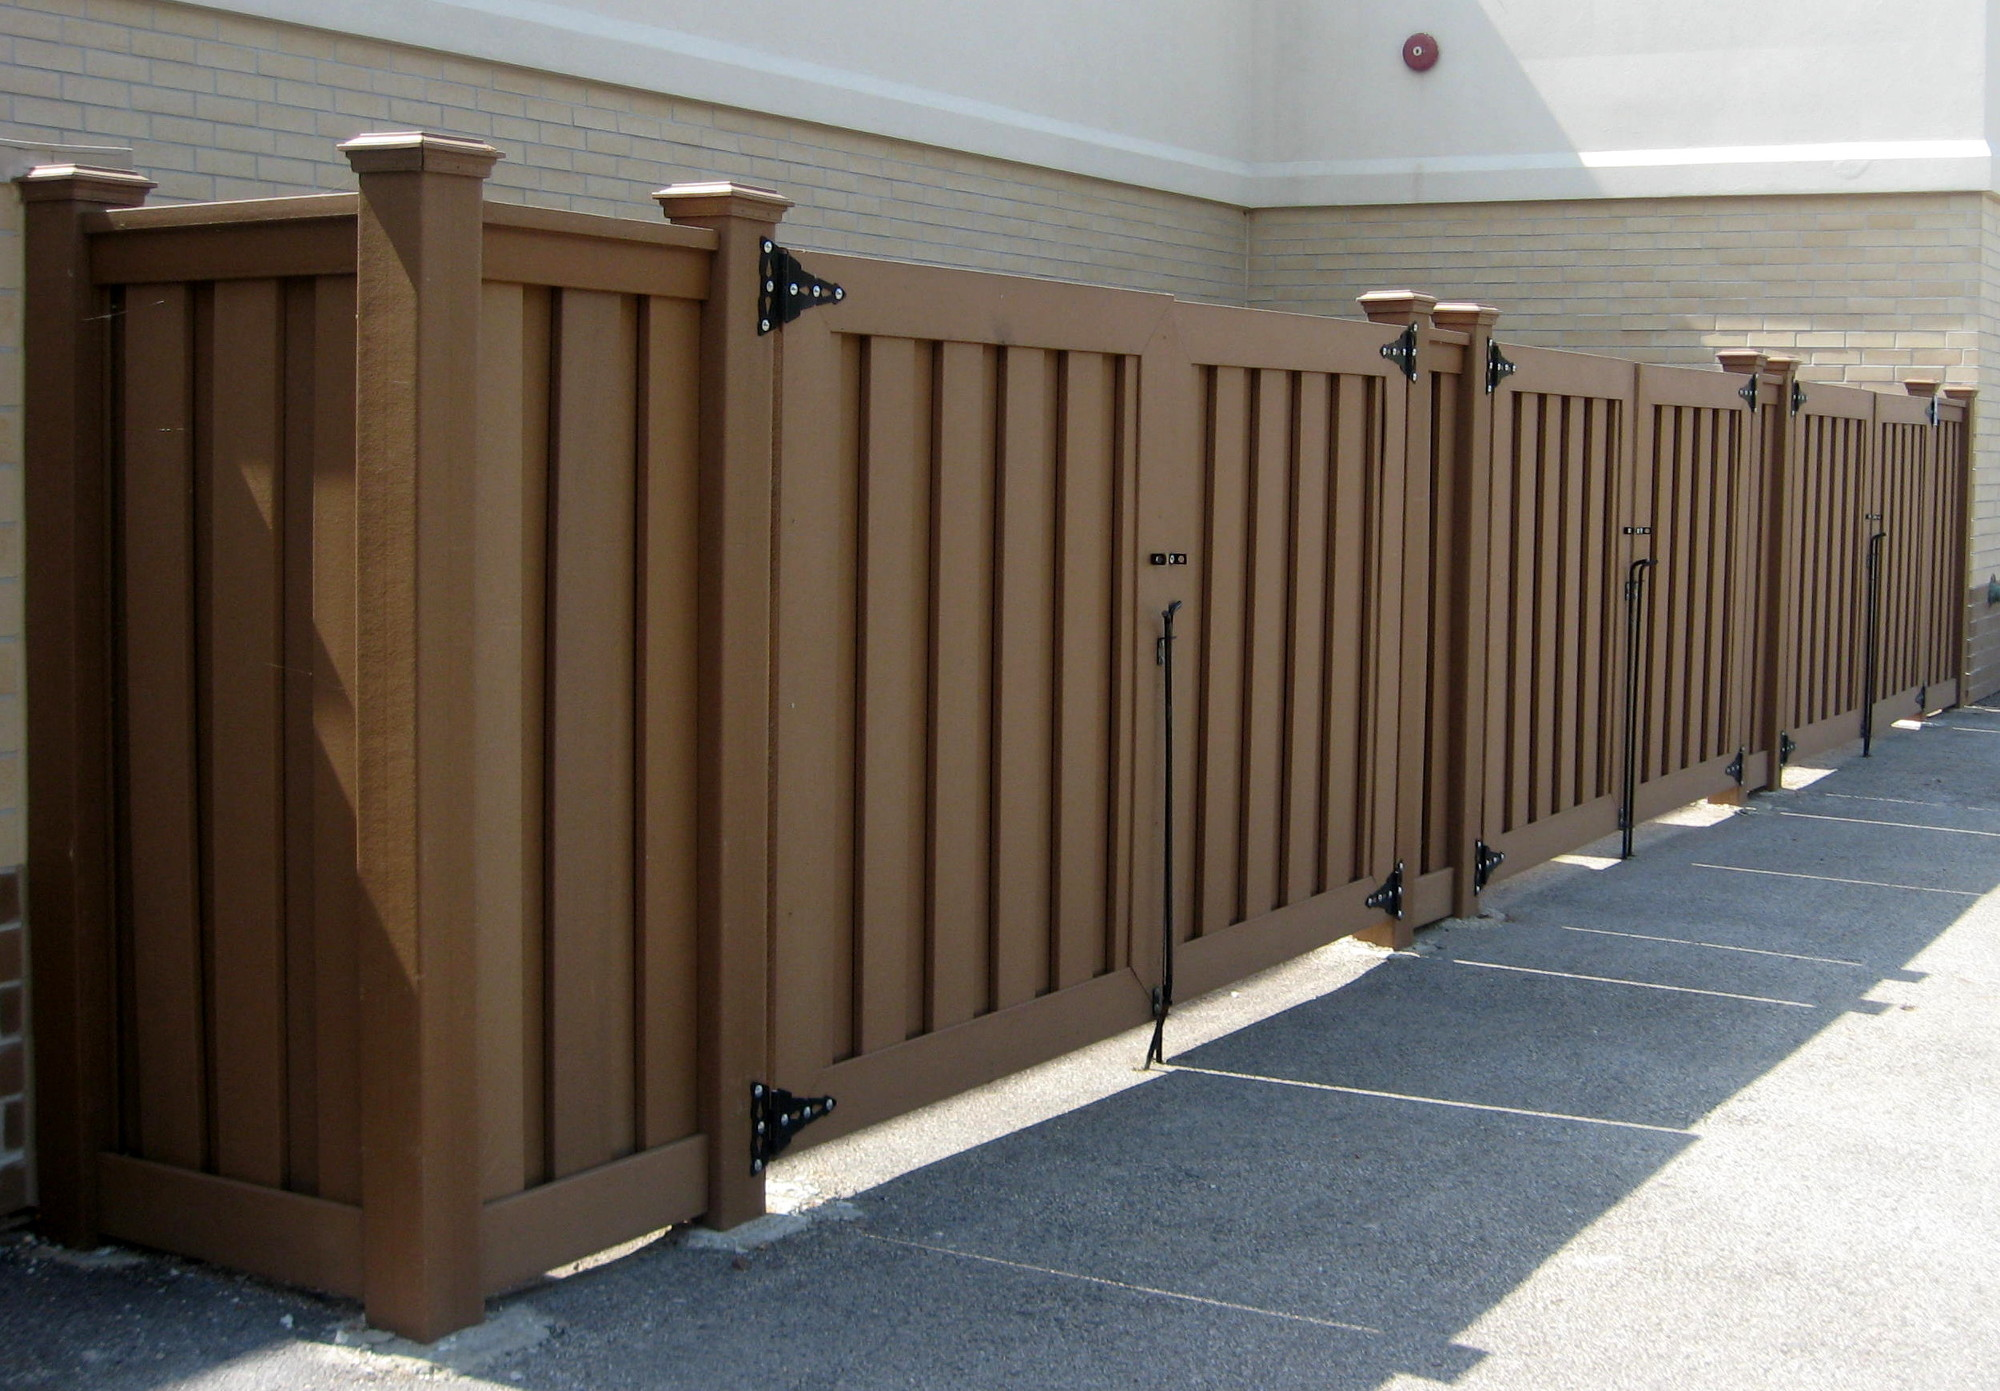 Dumpster Enclosures